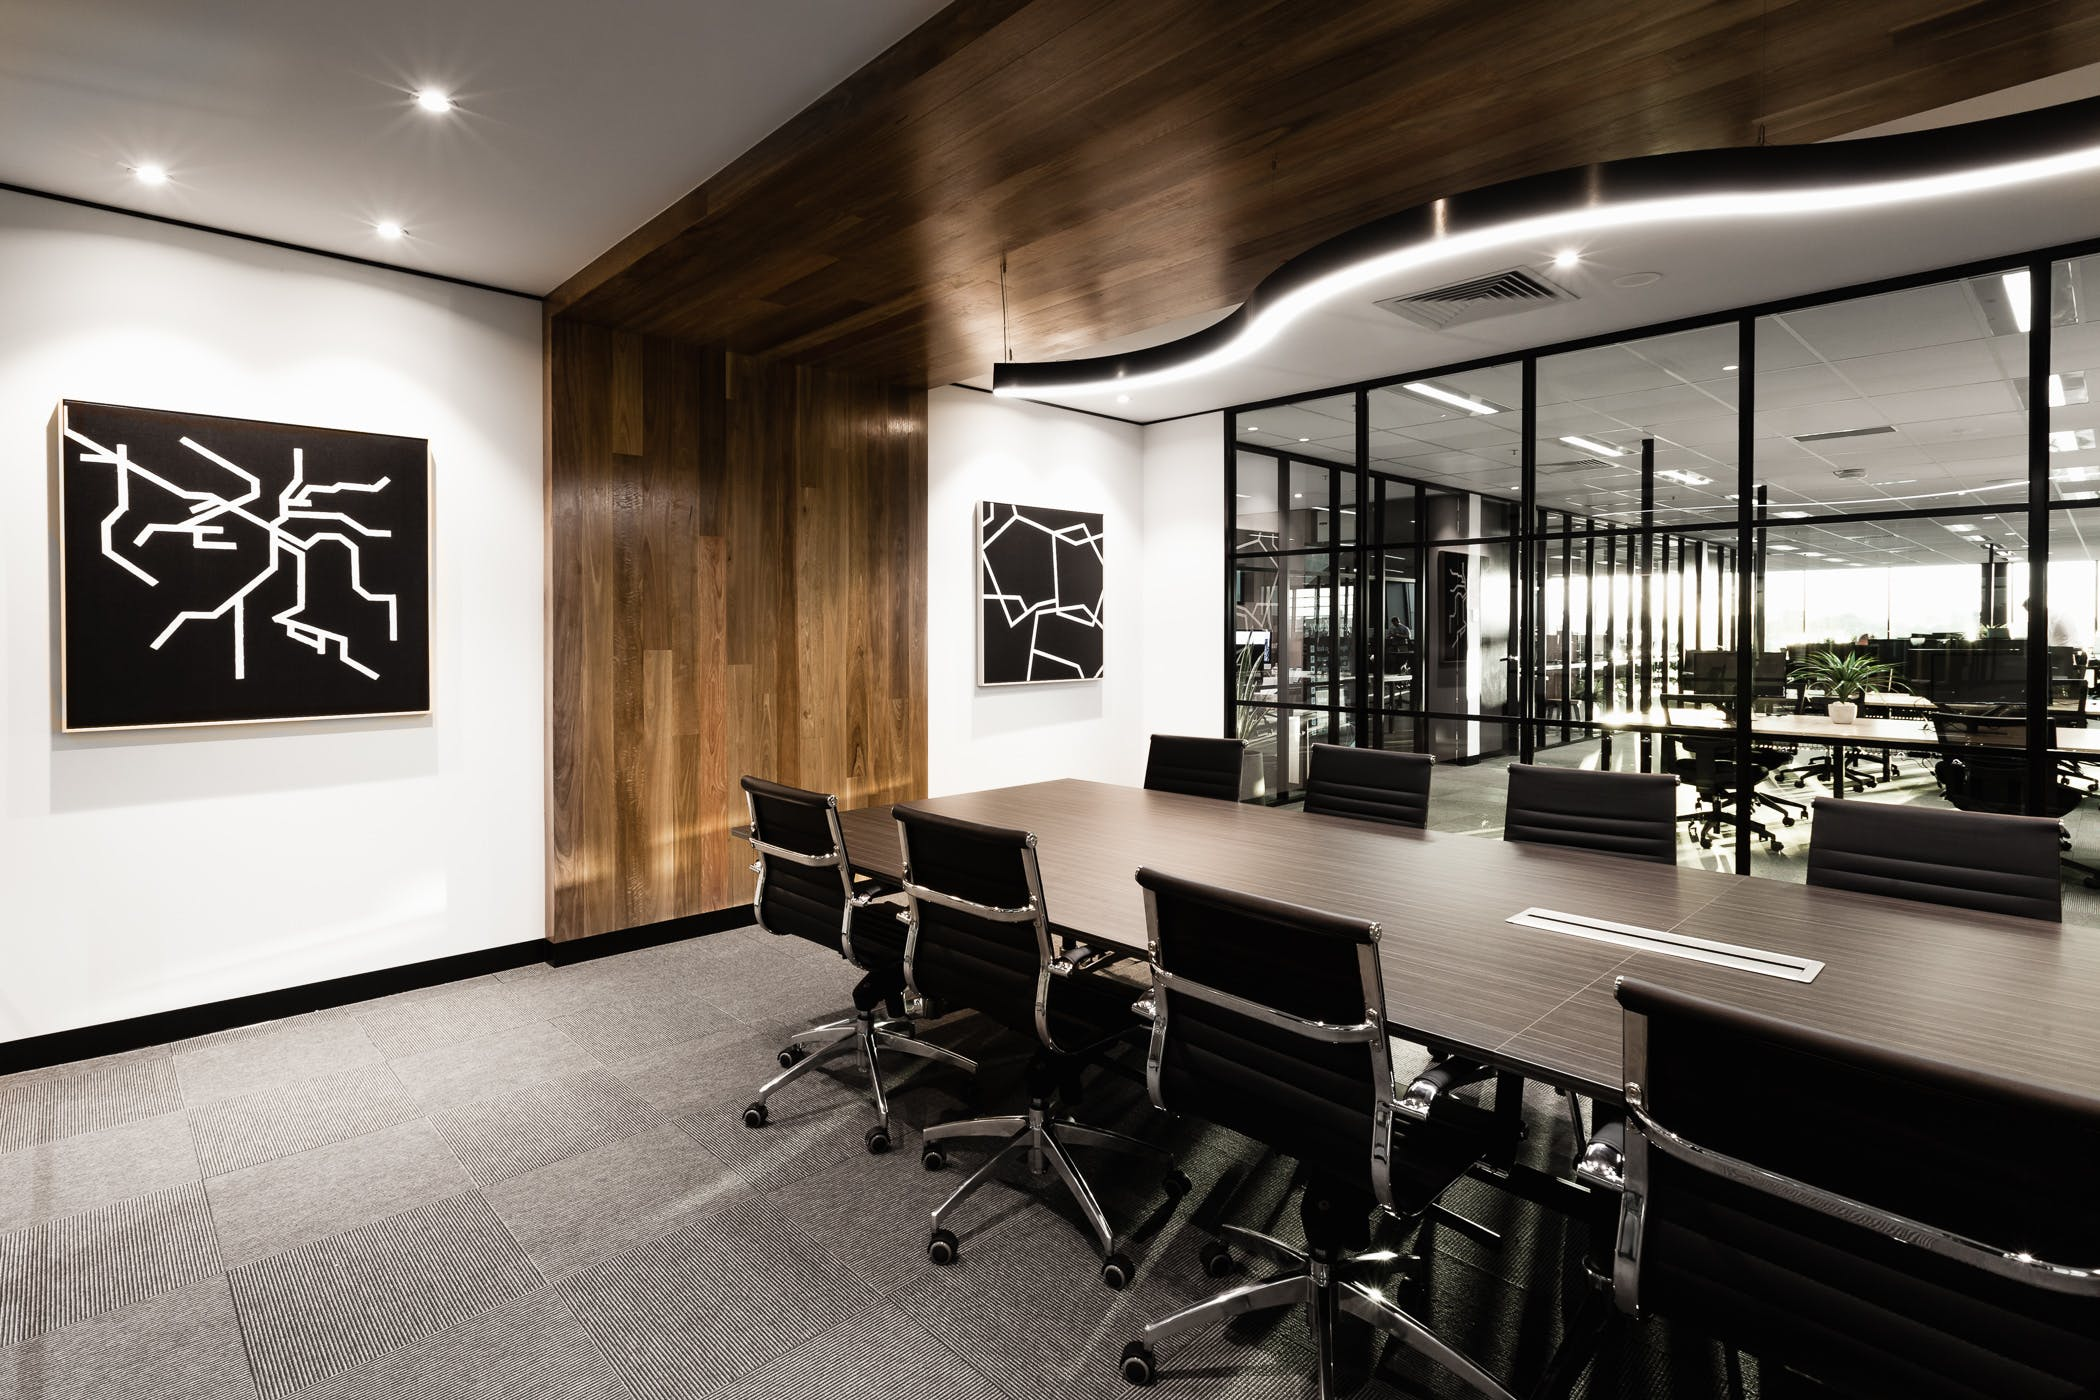 Boardroom, meeting room at Waterman Narre Warren, image 1